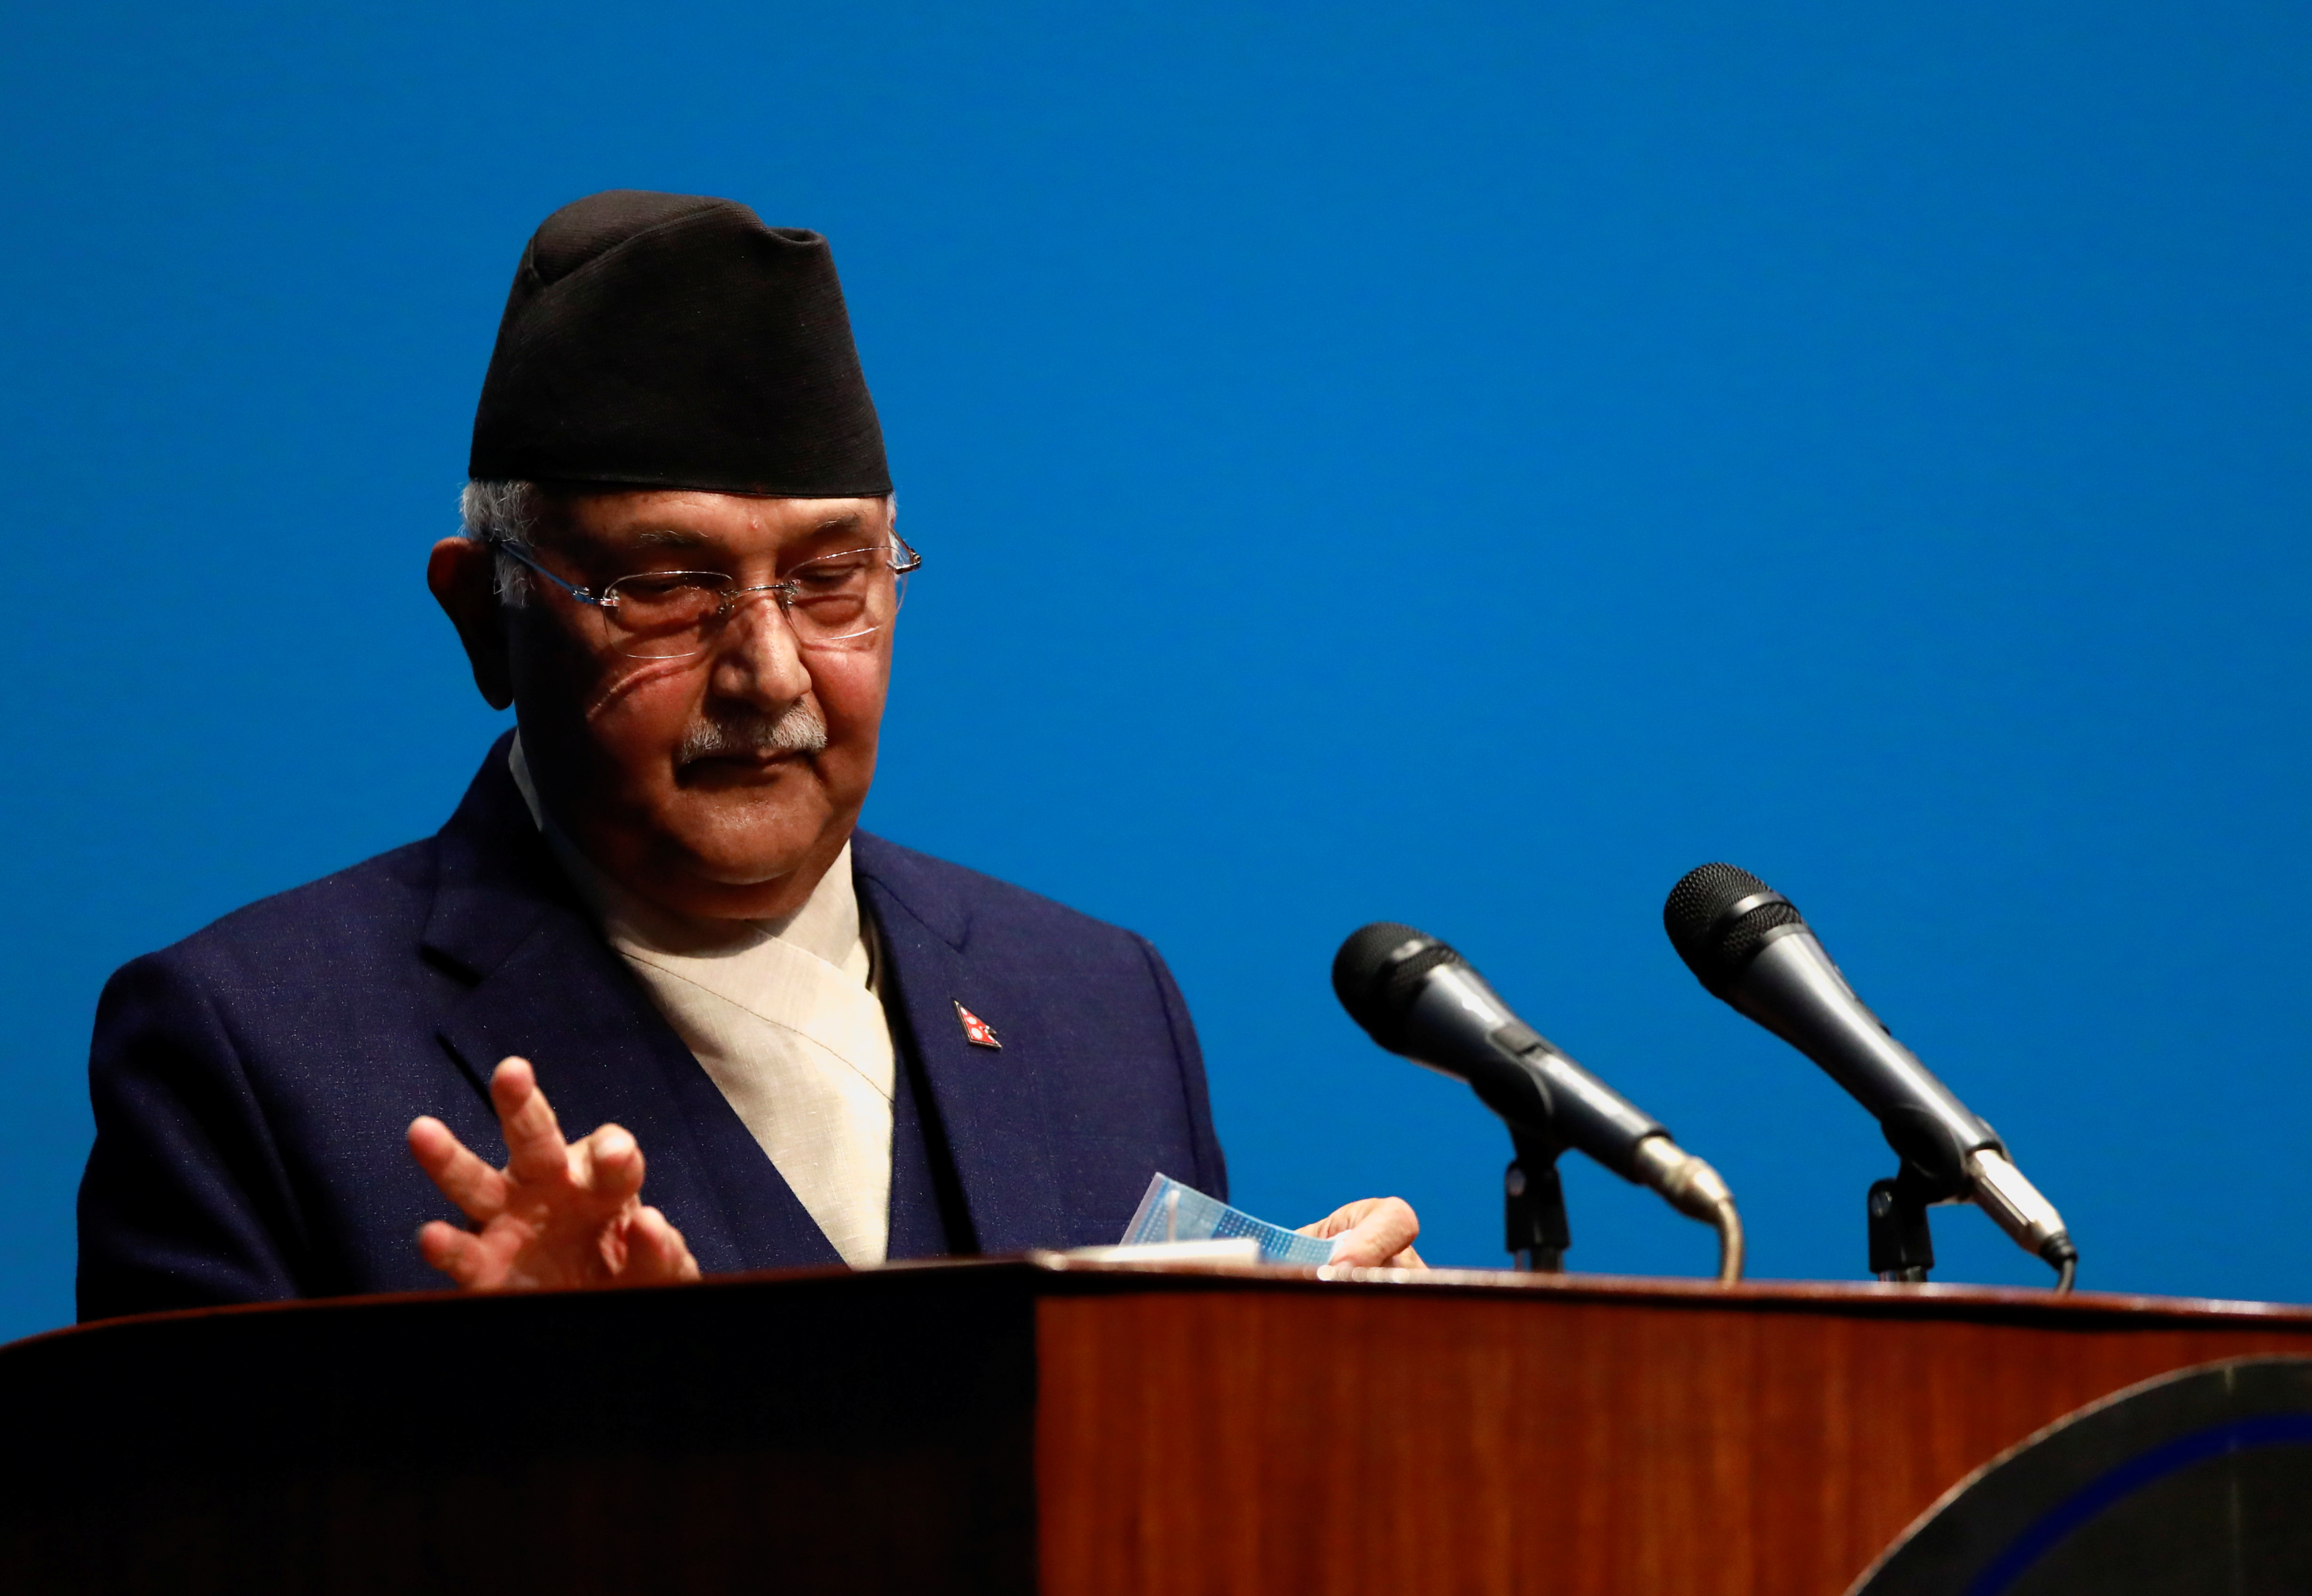 Nepal's Prime Minister Khadga Prasad Sharma Oli, also known as K.P. Oli, delivers a speech before a confidence vote at the parliament in Kathmandu, Nepal May 10, 2021. REUTERS/Navesh Chitrakar